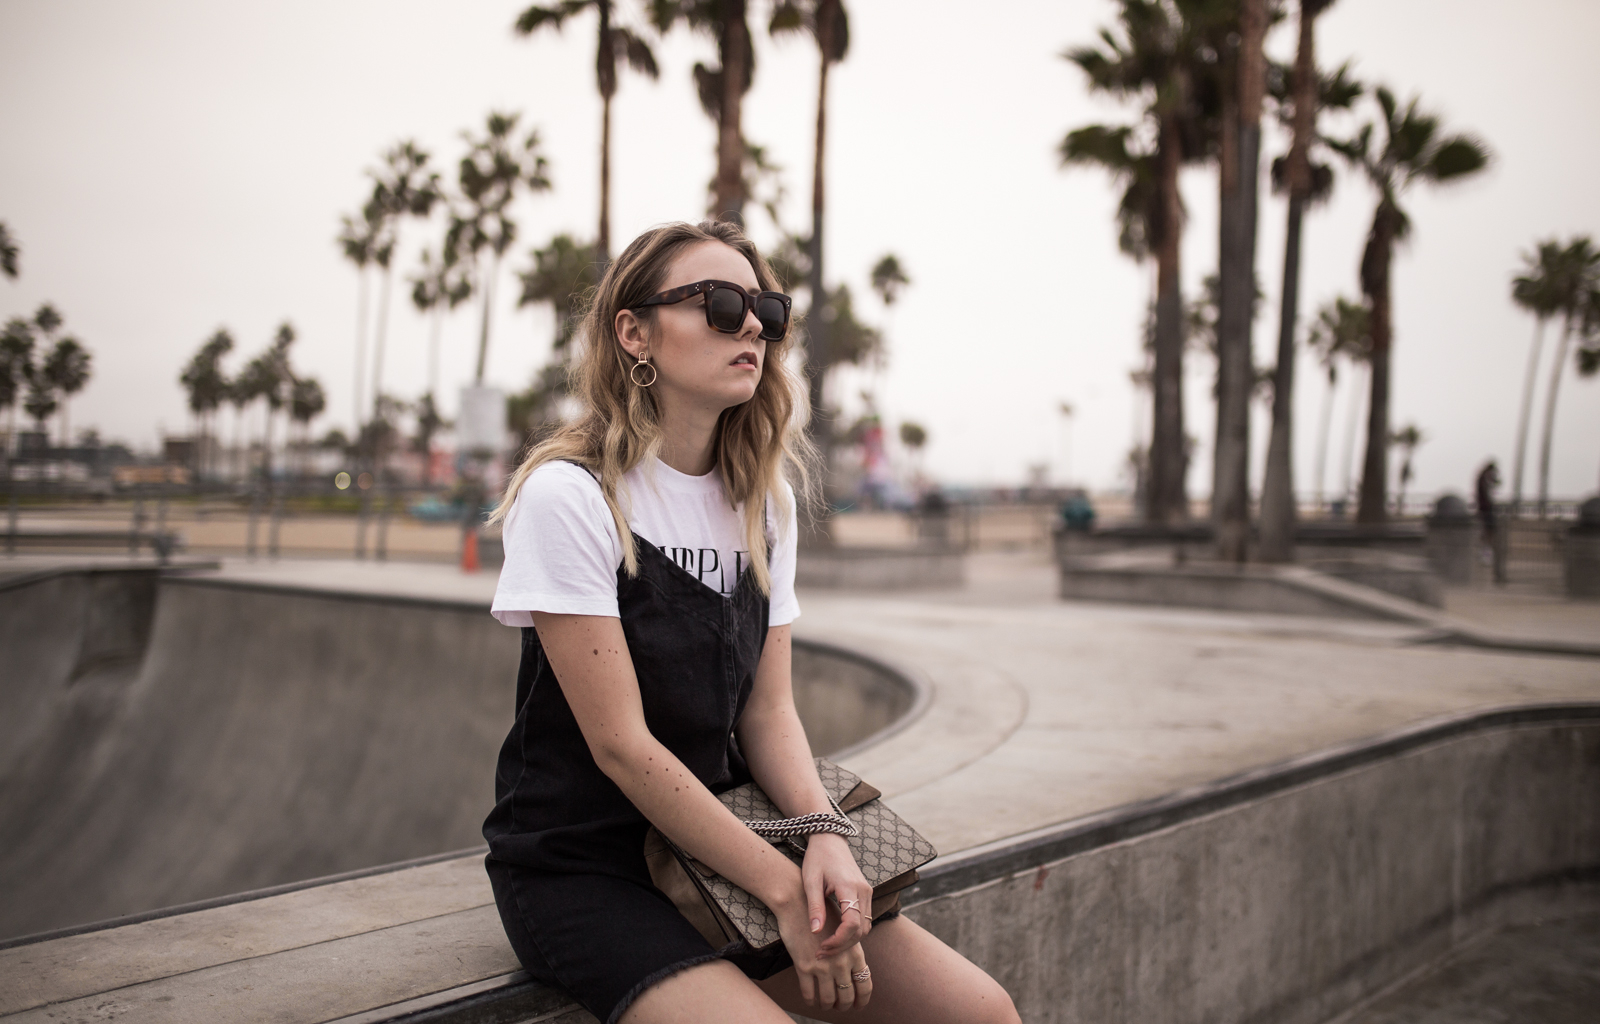 Jeans Slipdress Ganni Murphy Shirt Venice Skate Park Los Angeles The-Limits-of-Control-Fashion-Fashionblogger-Blogger-Berlin-Deutschland-Modeblog-Modeblogger